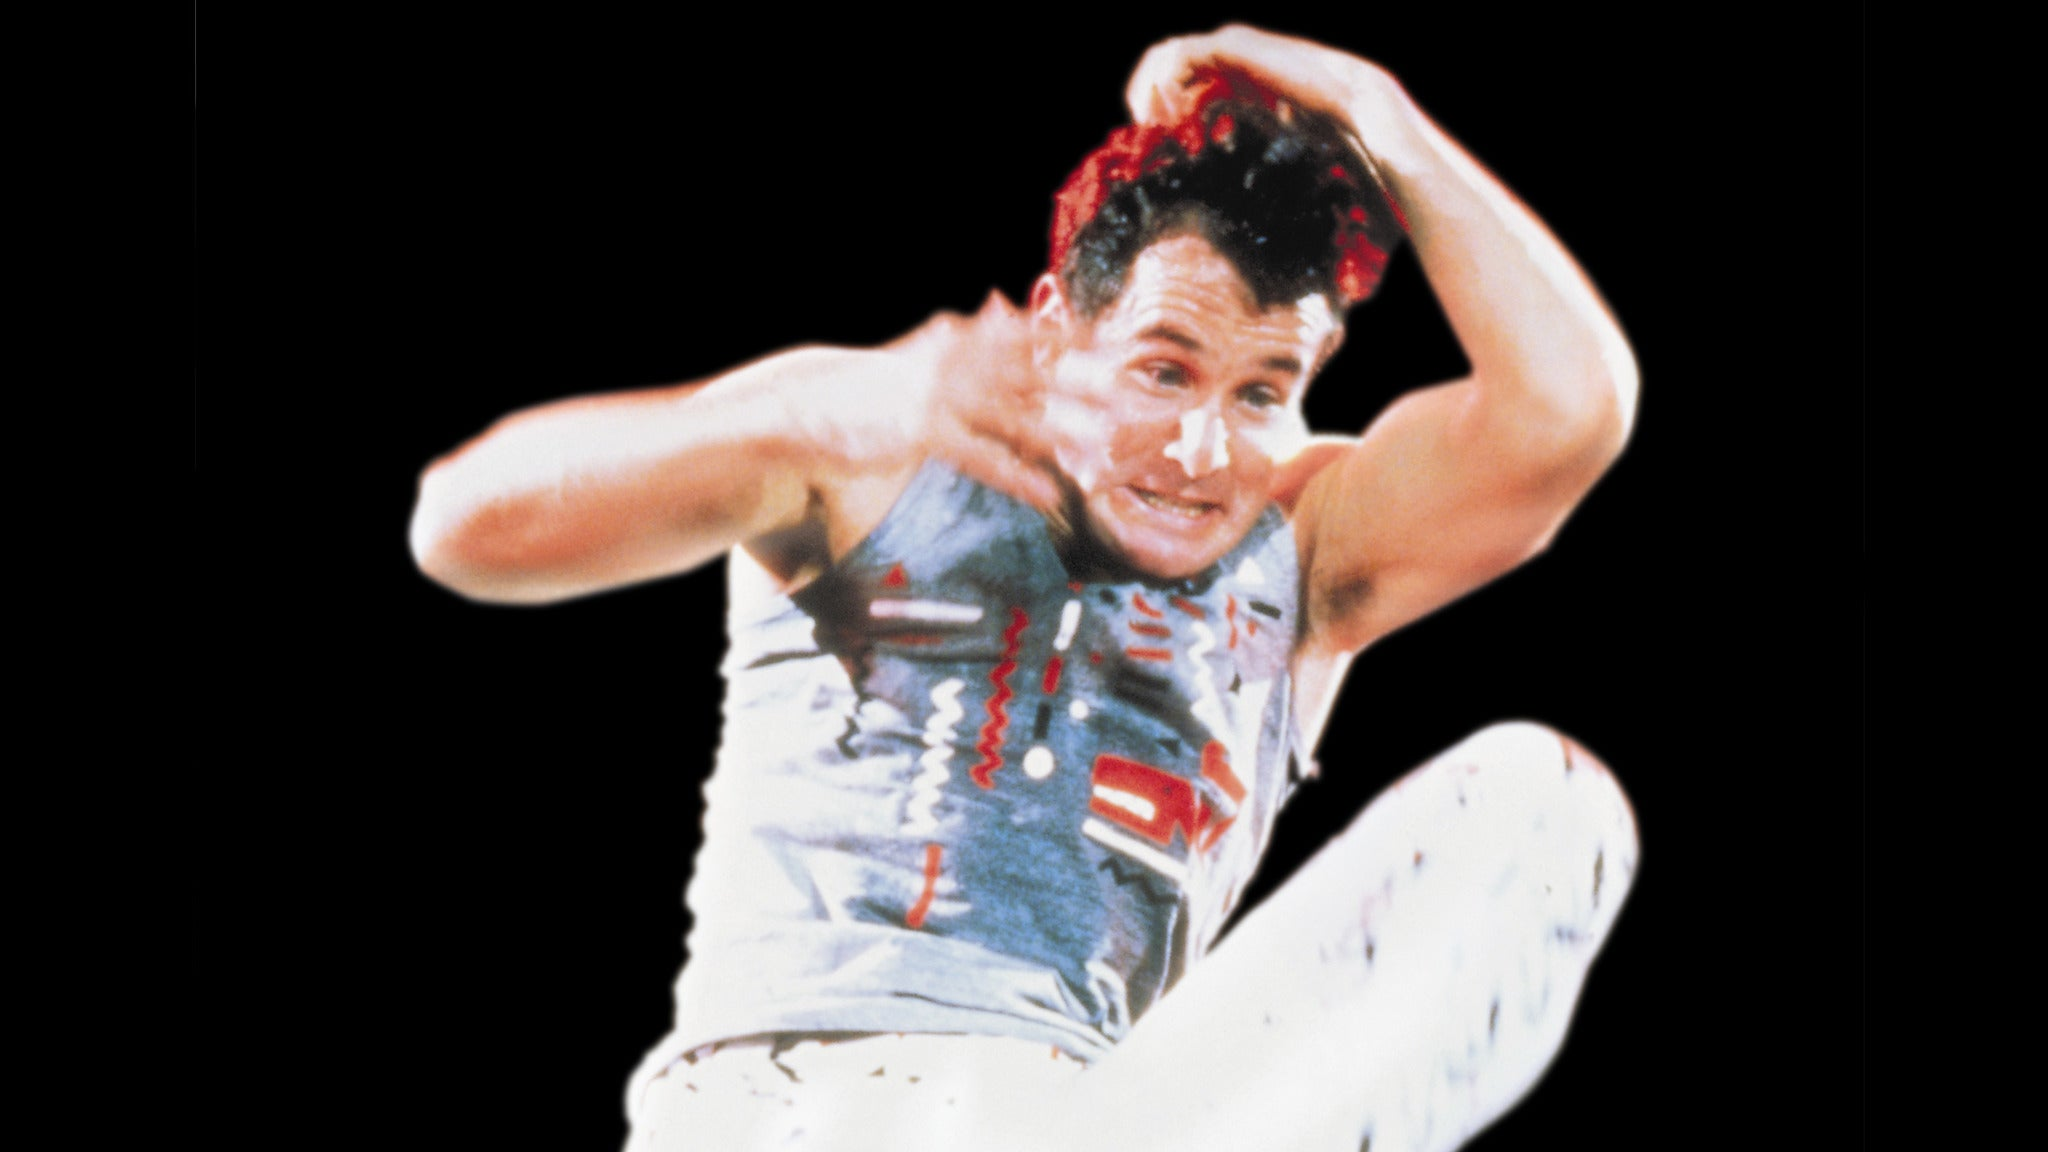 SORRY, THIS EVENT IS NO LONGER ACTIVE<br>Johnny Clegg - The Final Journey at Balboa Theatre - San Diego, CA 92101